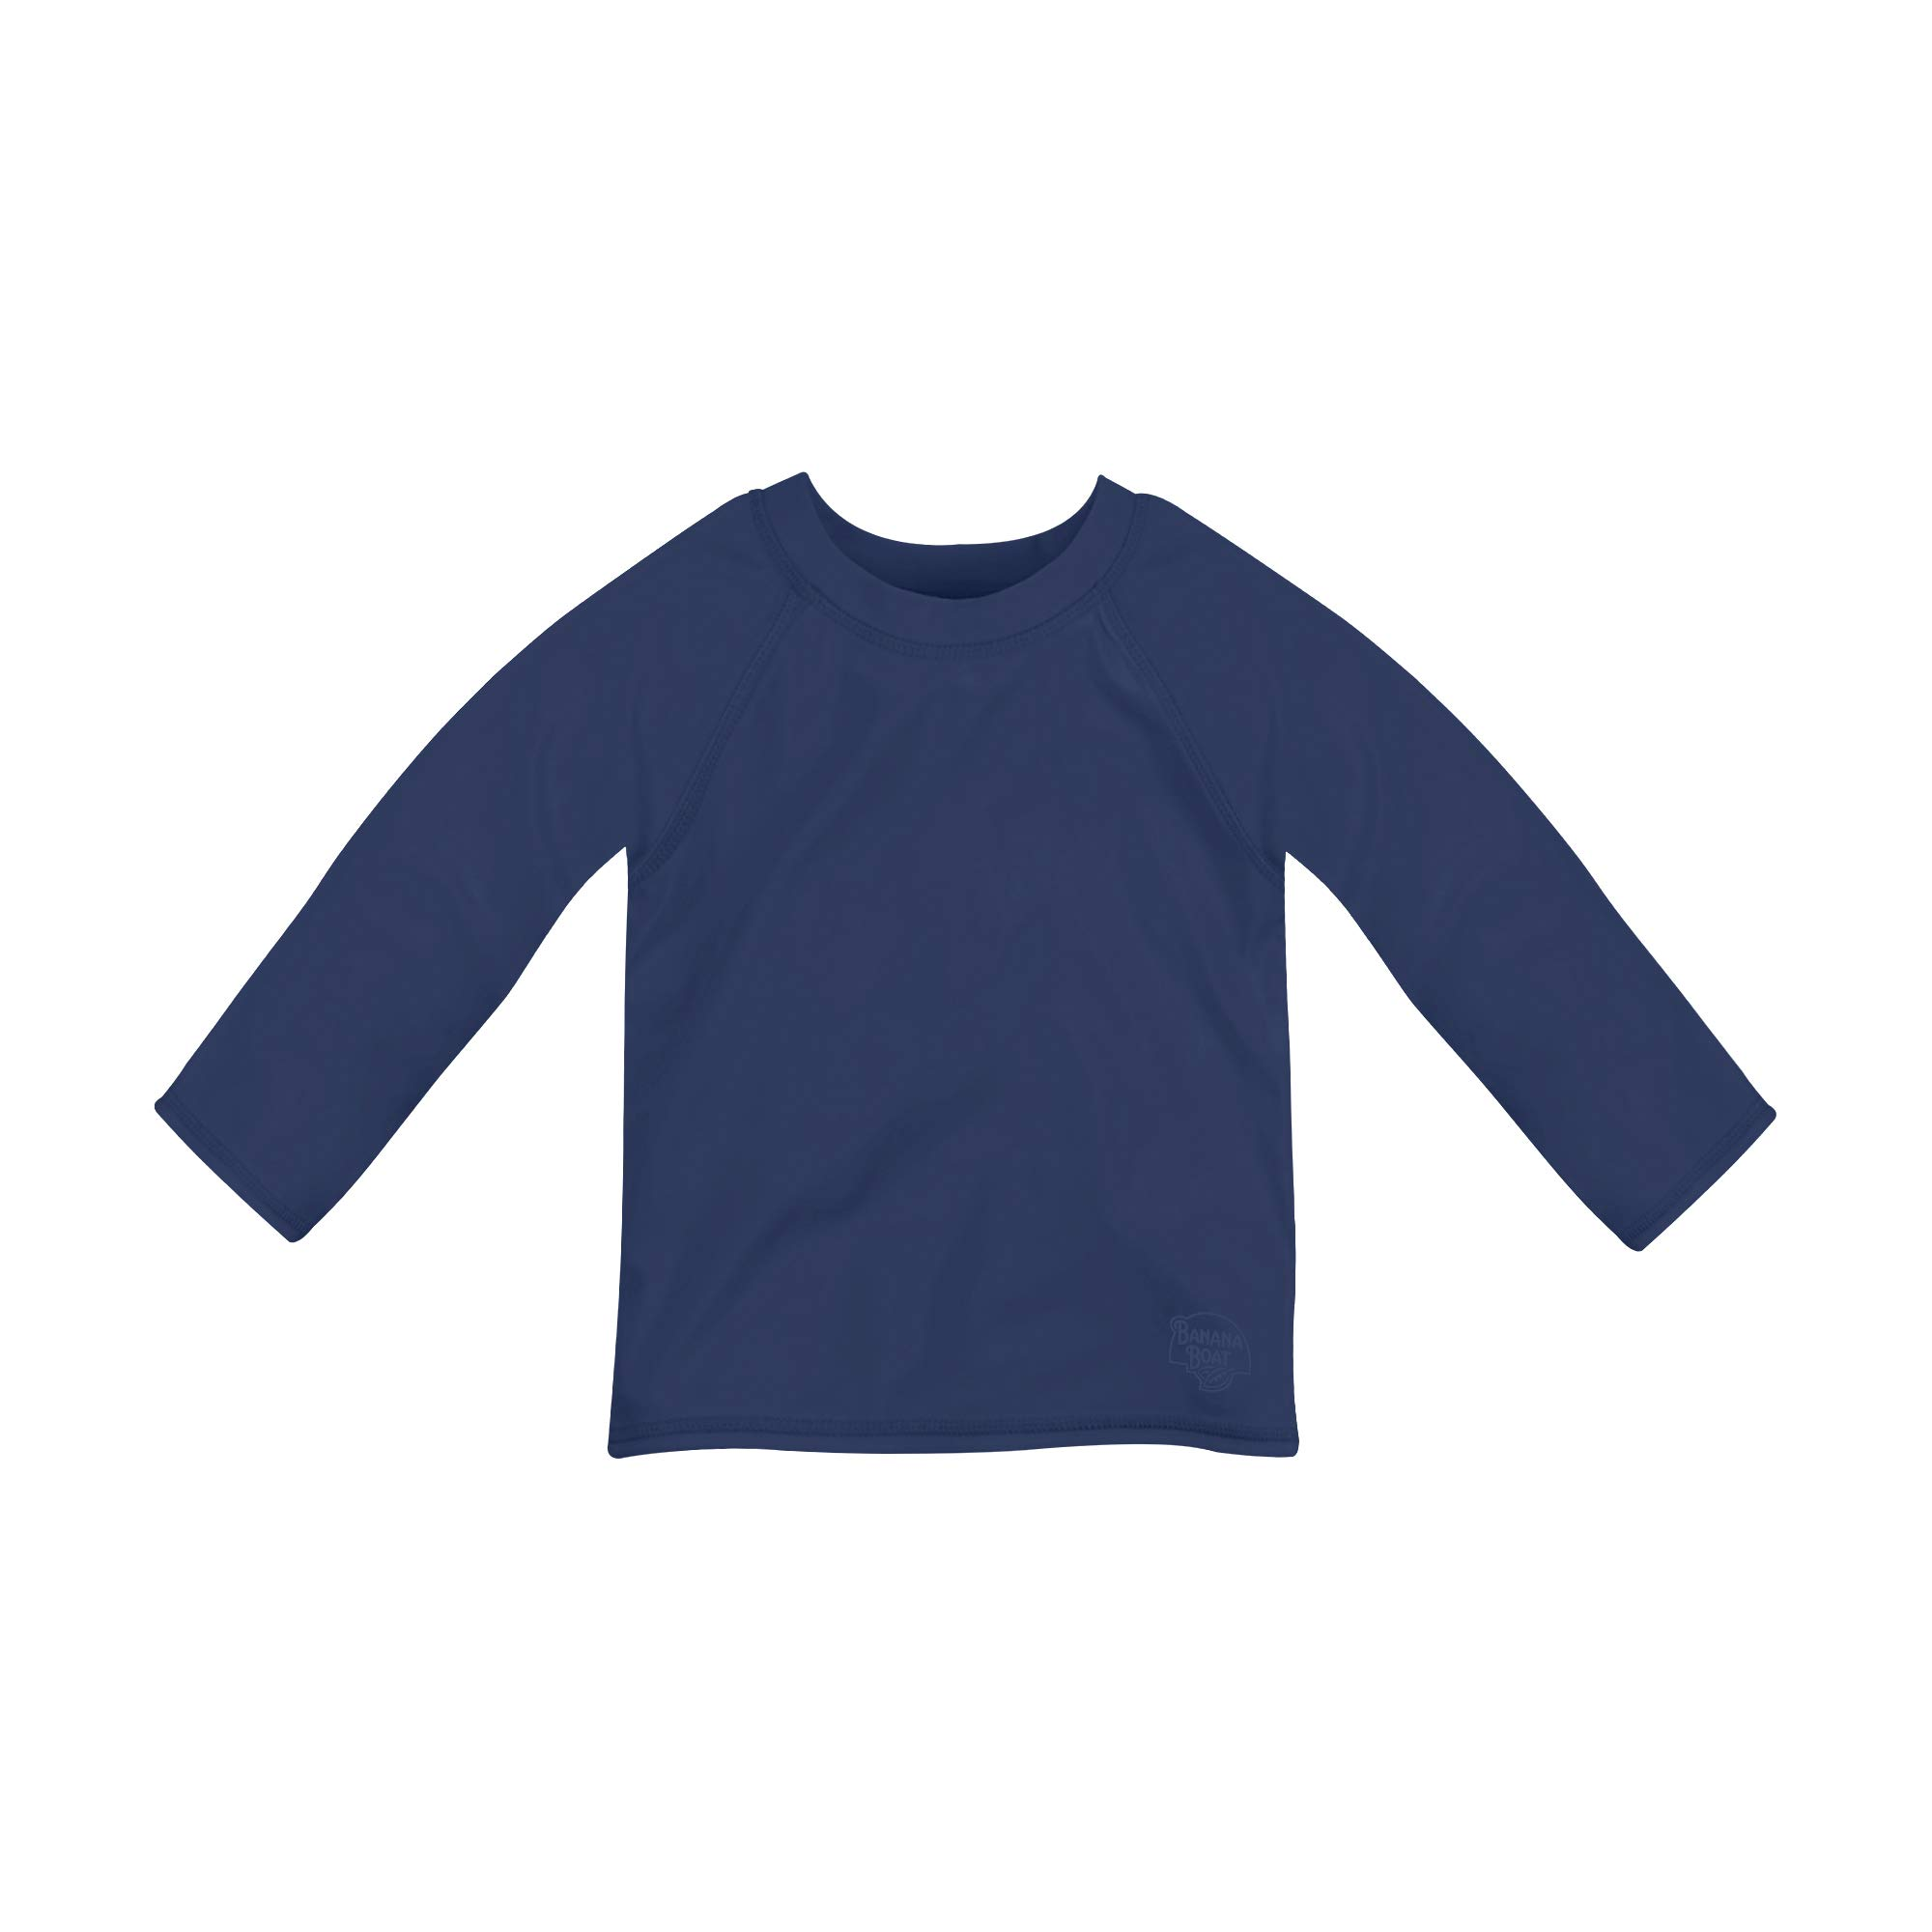 Banana Boat Girls and Boys Wetsuit with Rash Guard and Long Sleeves Navy